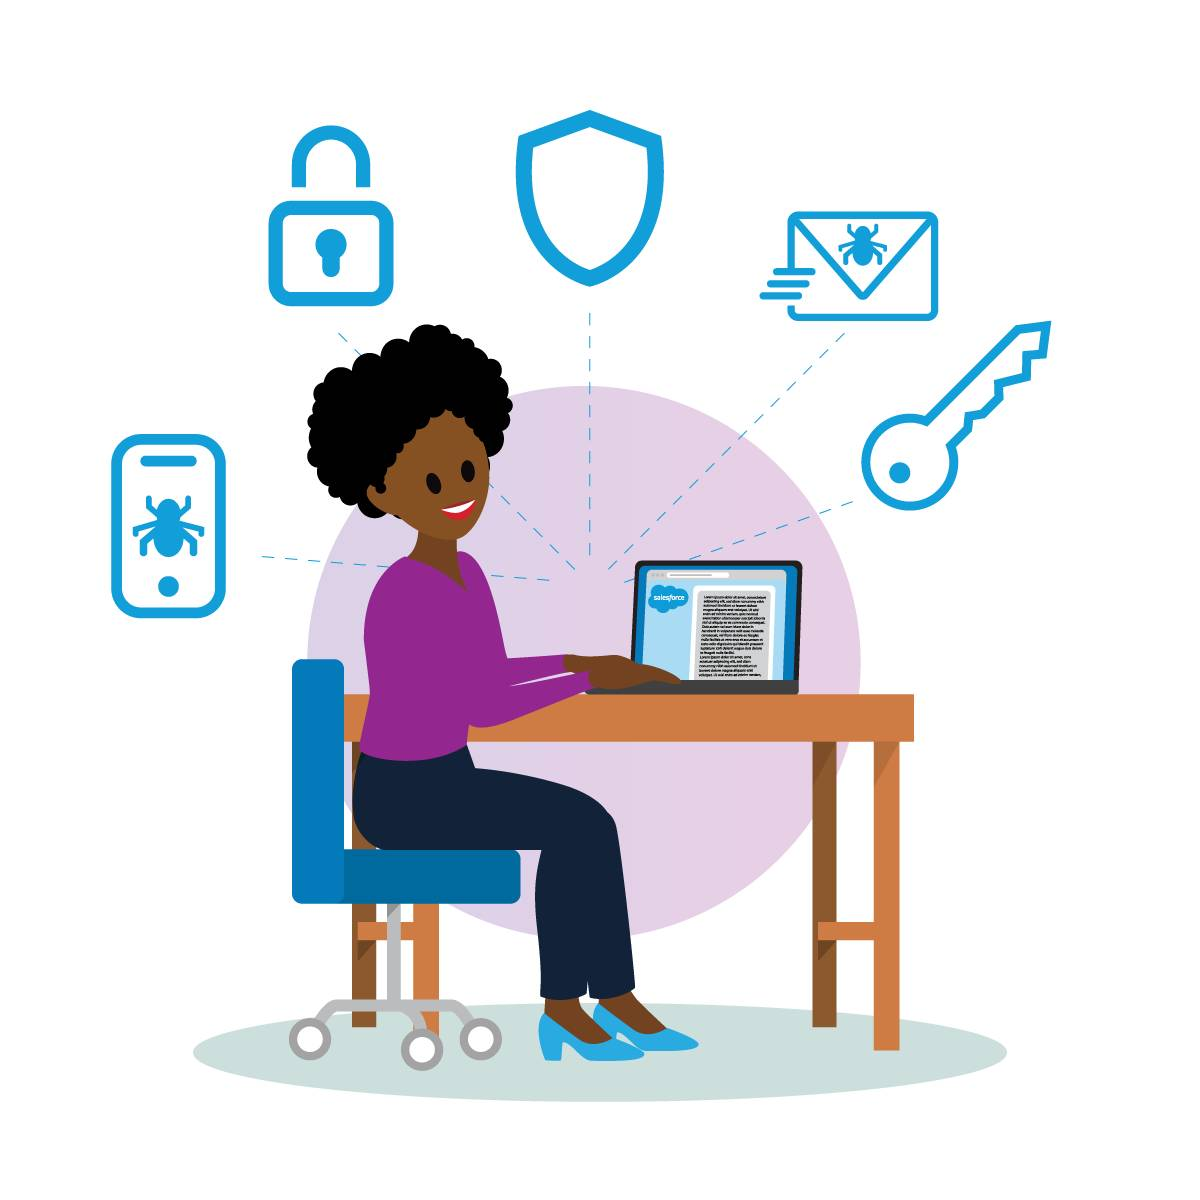 A woman at a laptop surrounded by security and bug icons